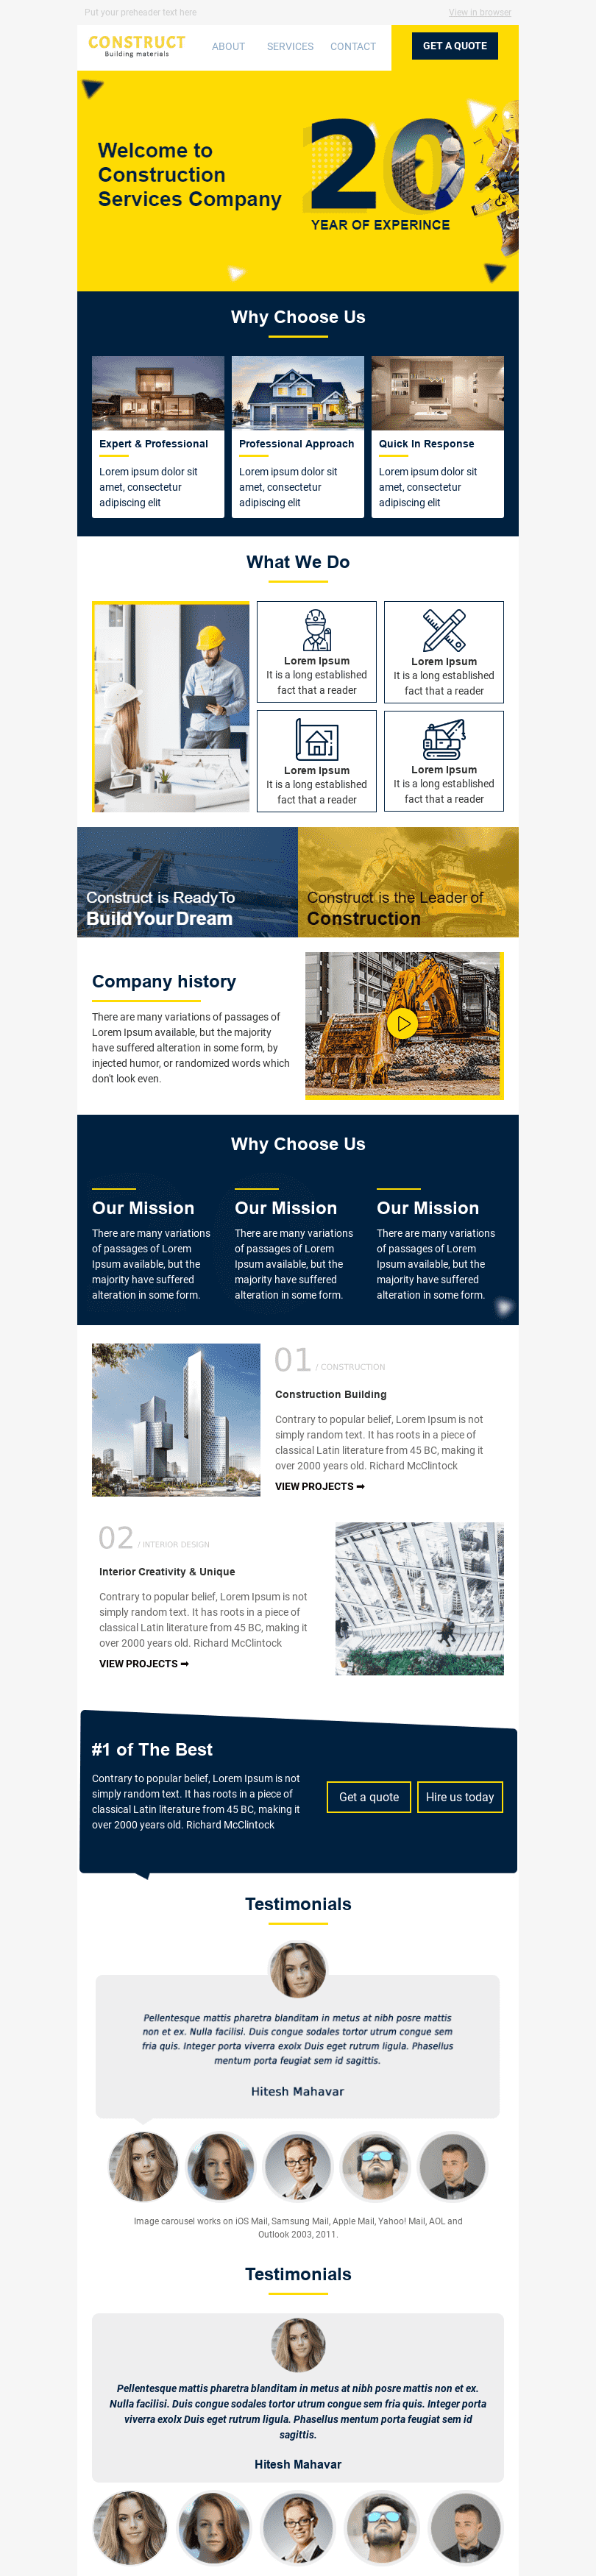 Promo Email Template «Build the Future» for Construction industry desktop view